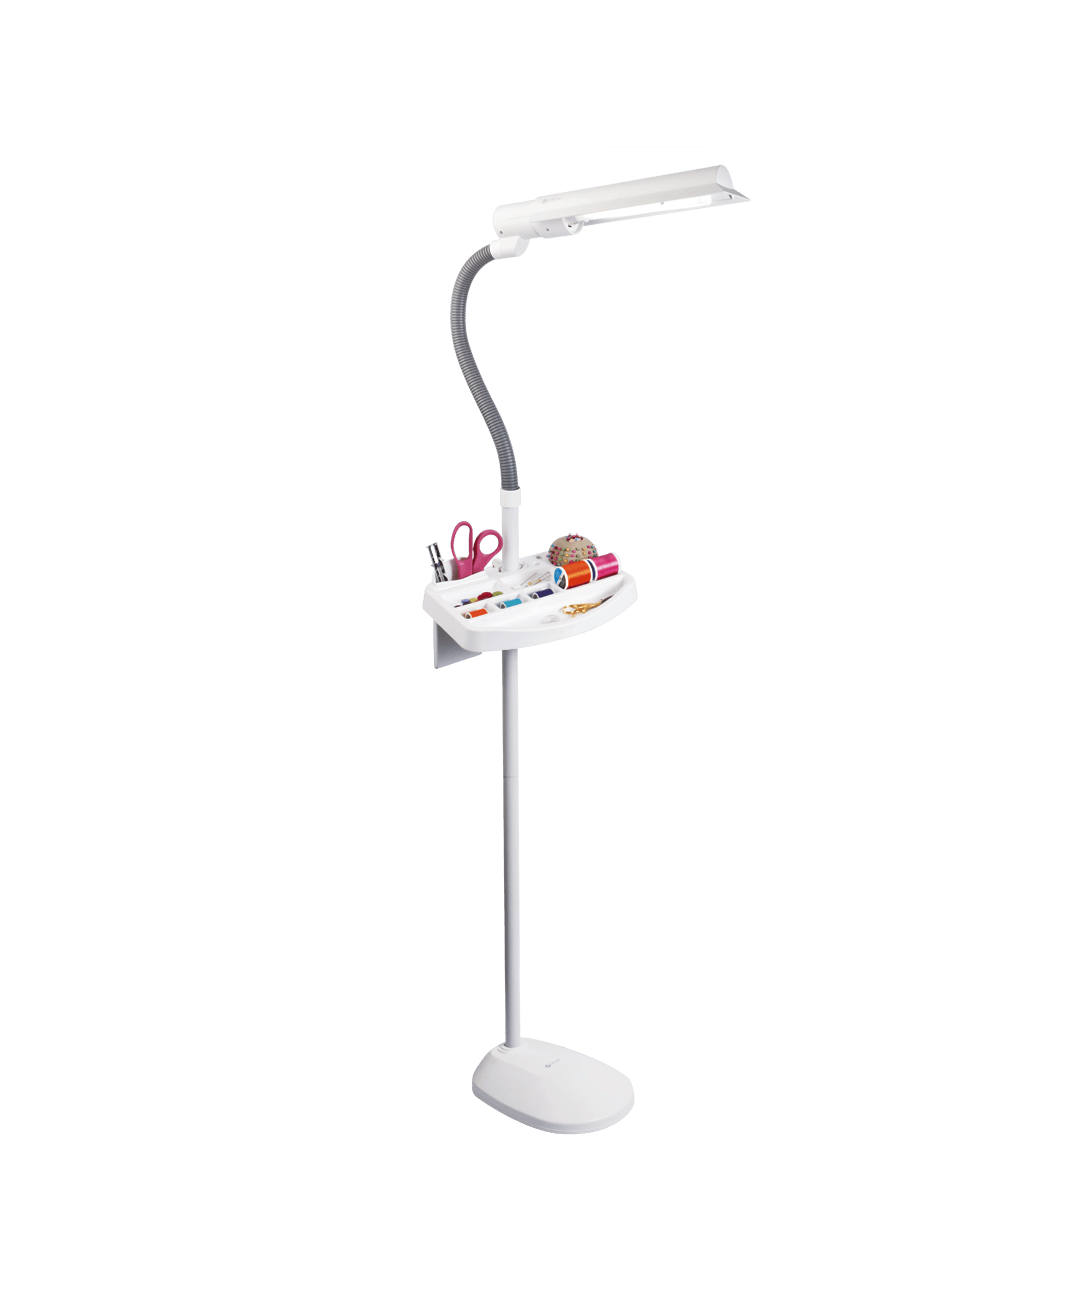 Ottlite 18w Sewing Sewers Floor Lamp With Storage Tray